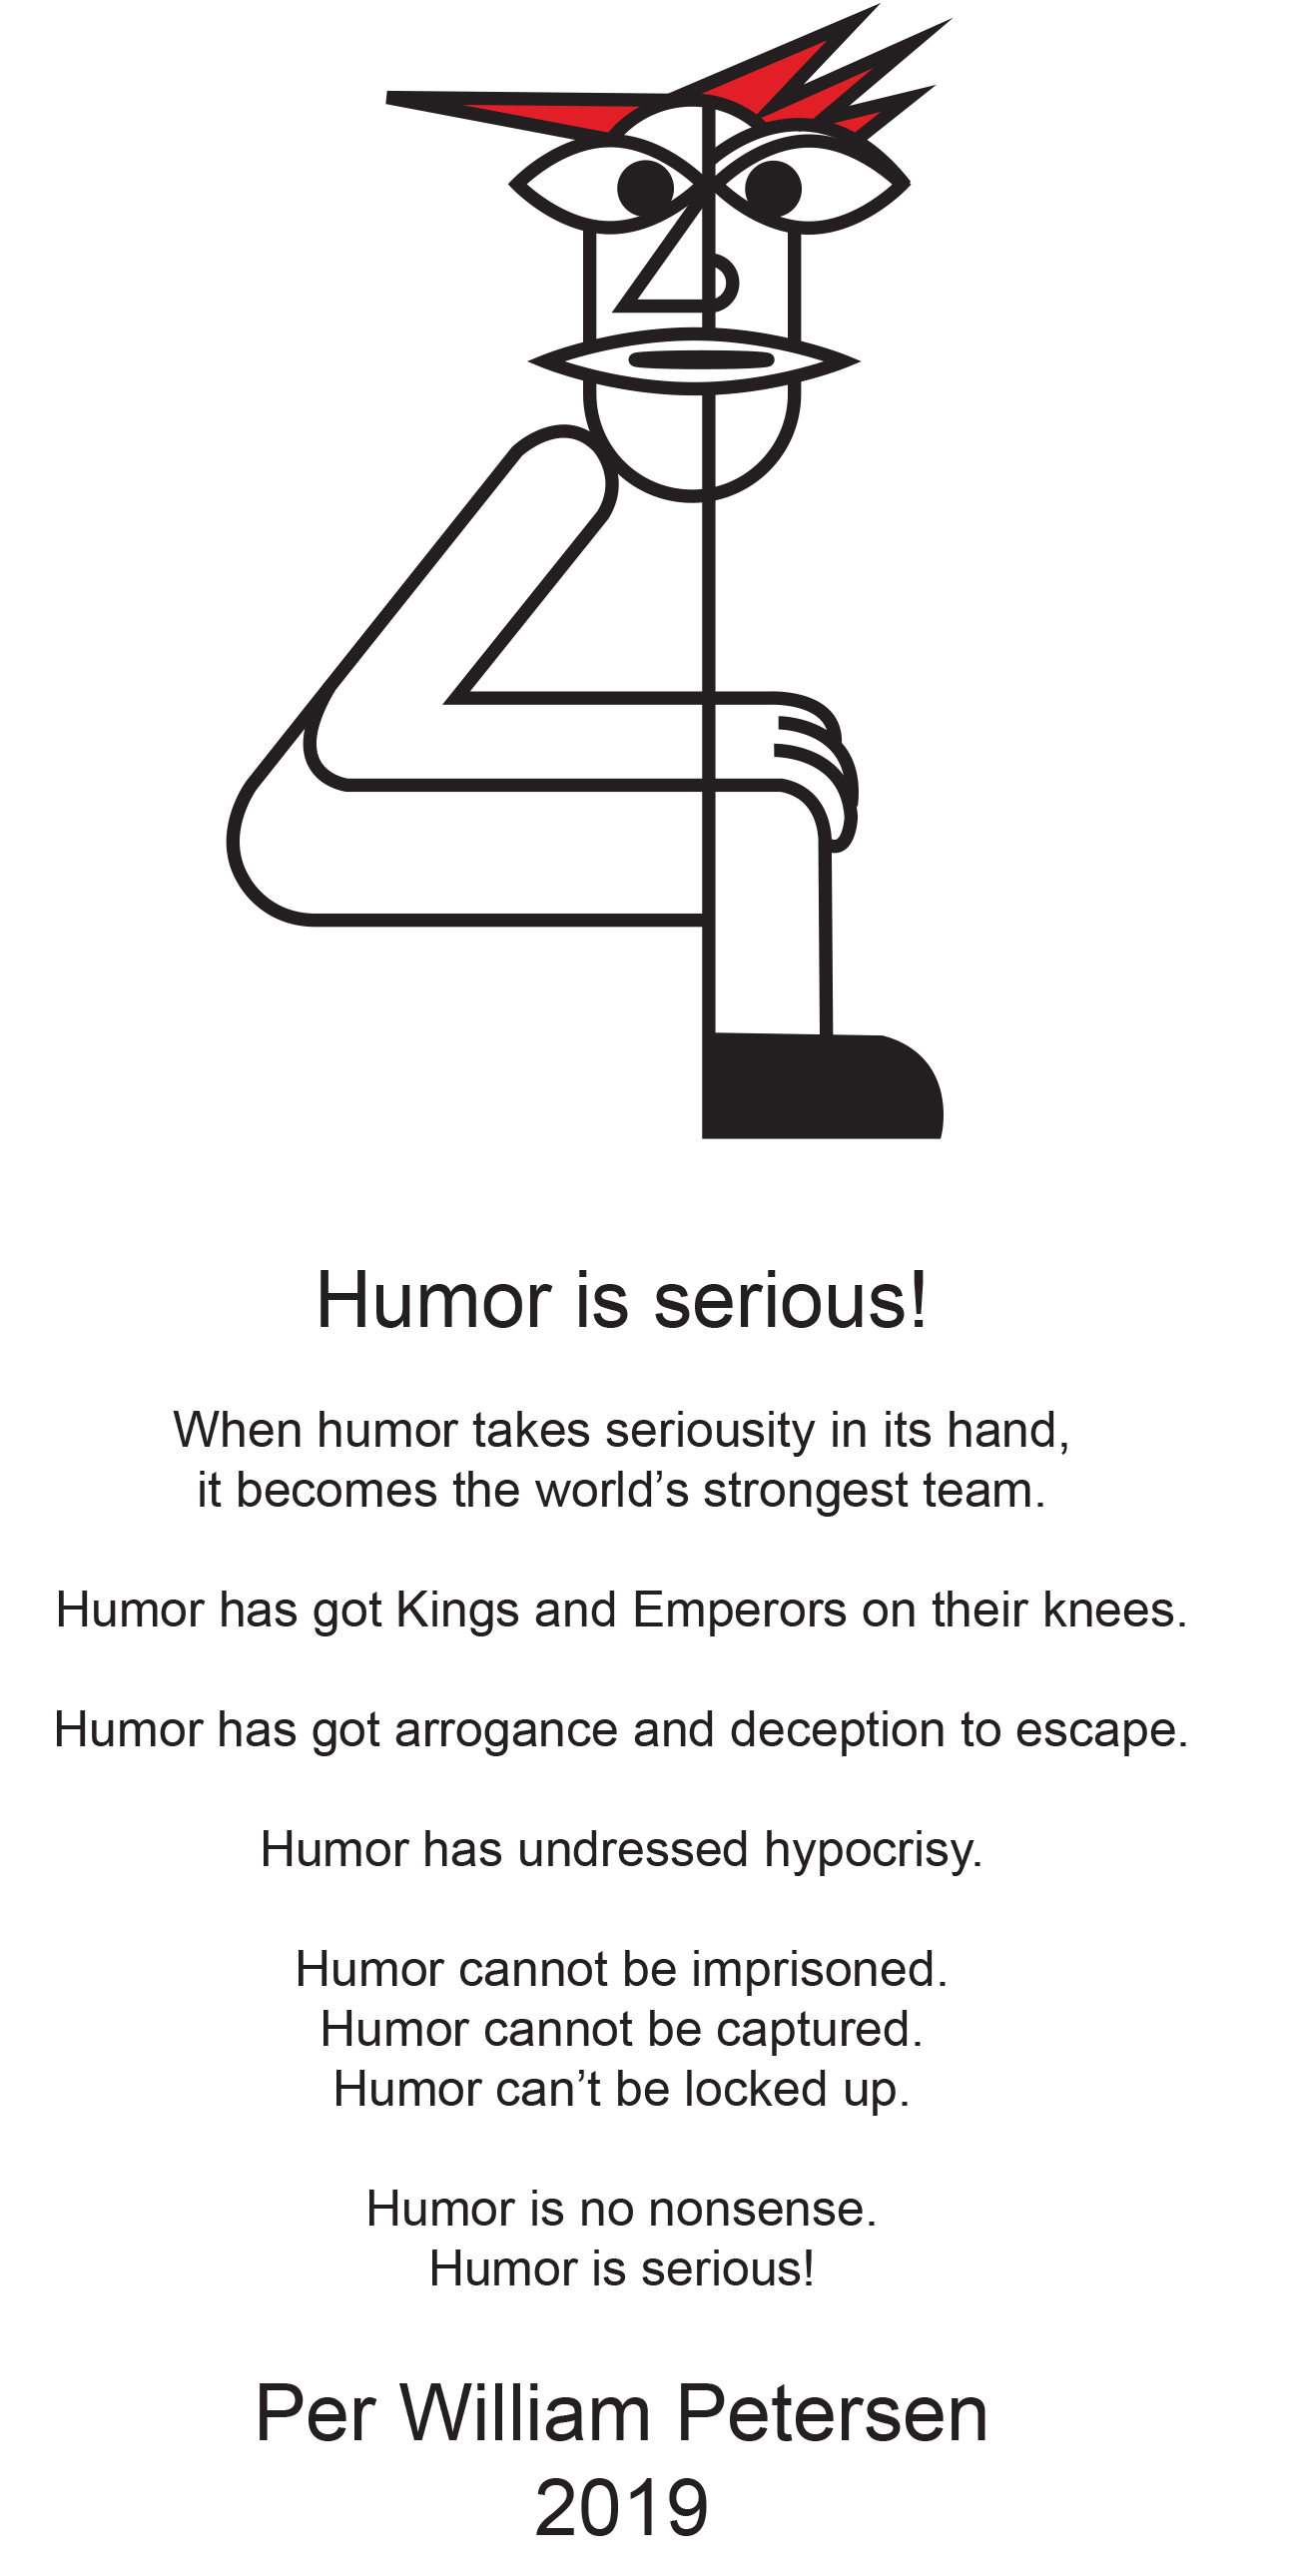 Humor is serious